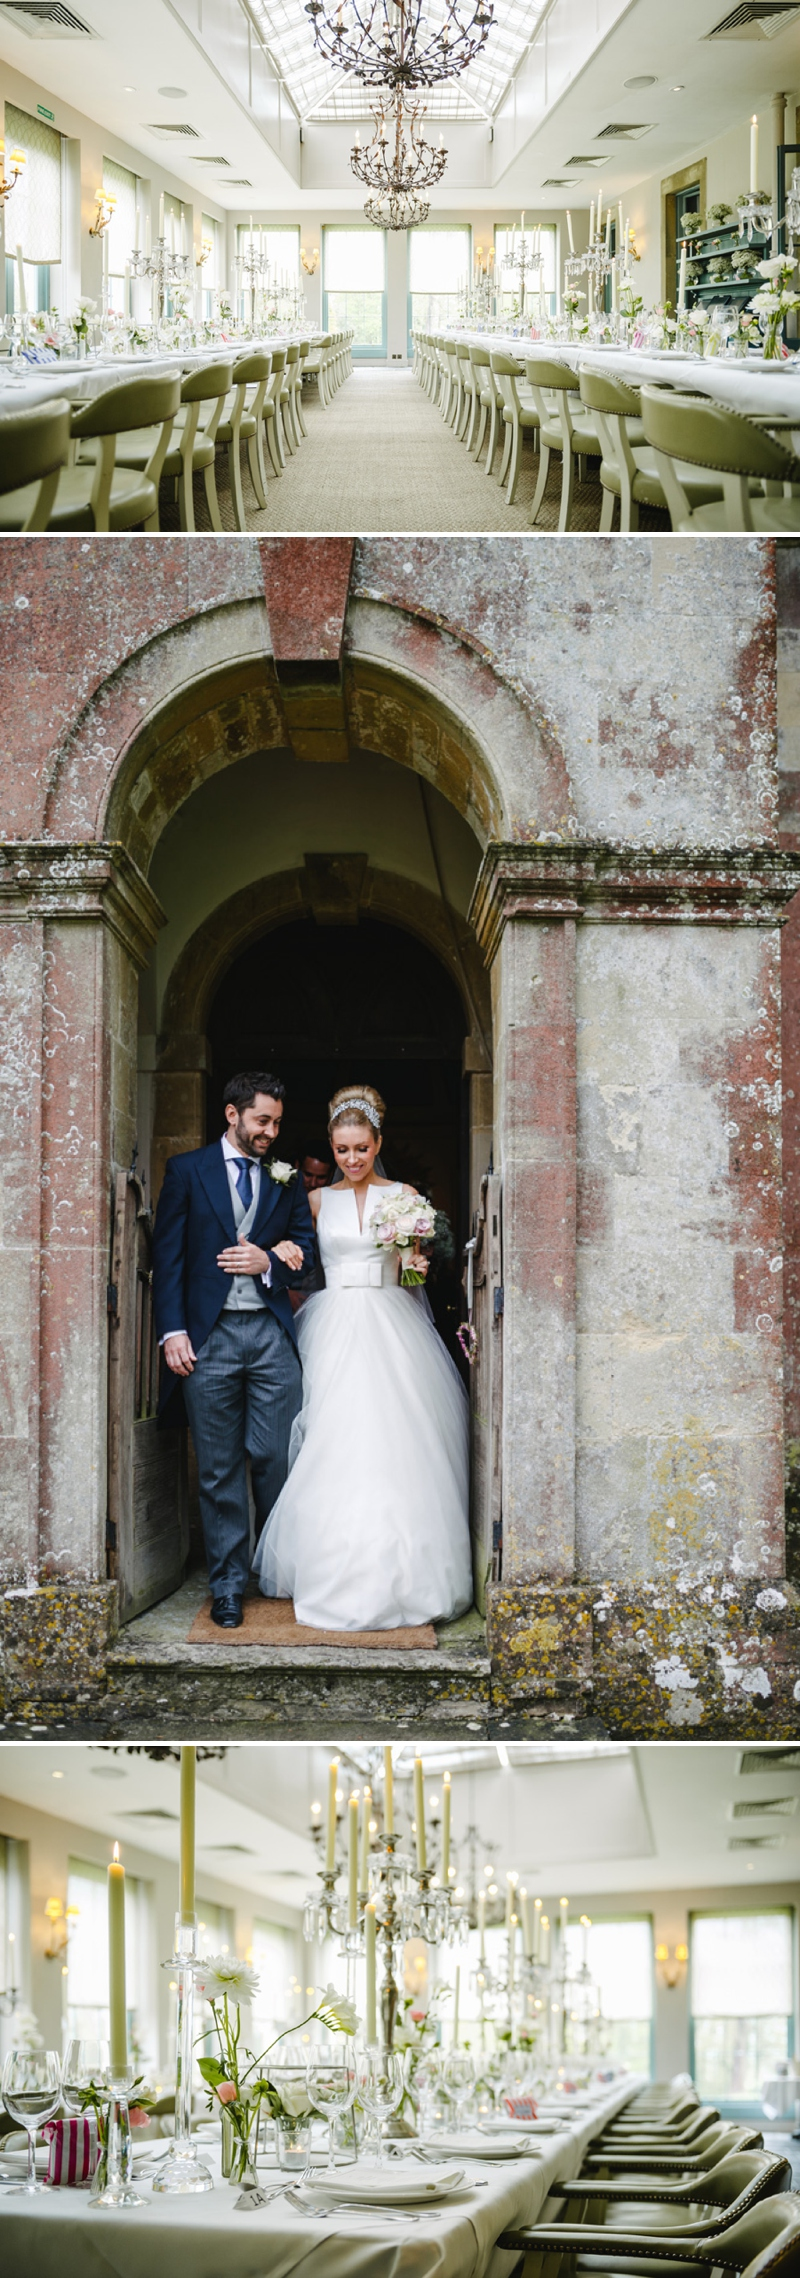 A sophisticated wedding at Babington house with Kate Spade pink shoes by Ann-Kathrin Koch_0528